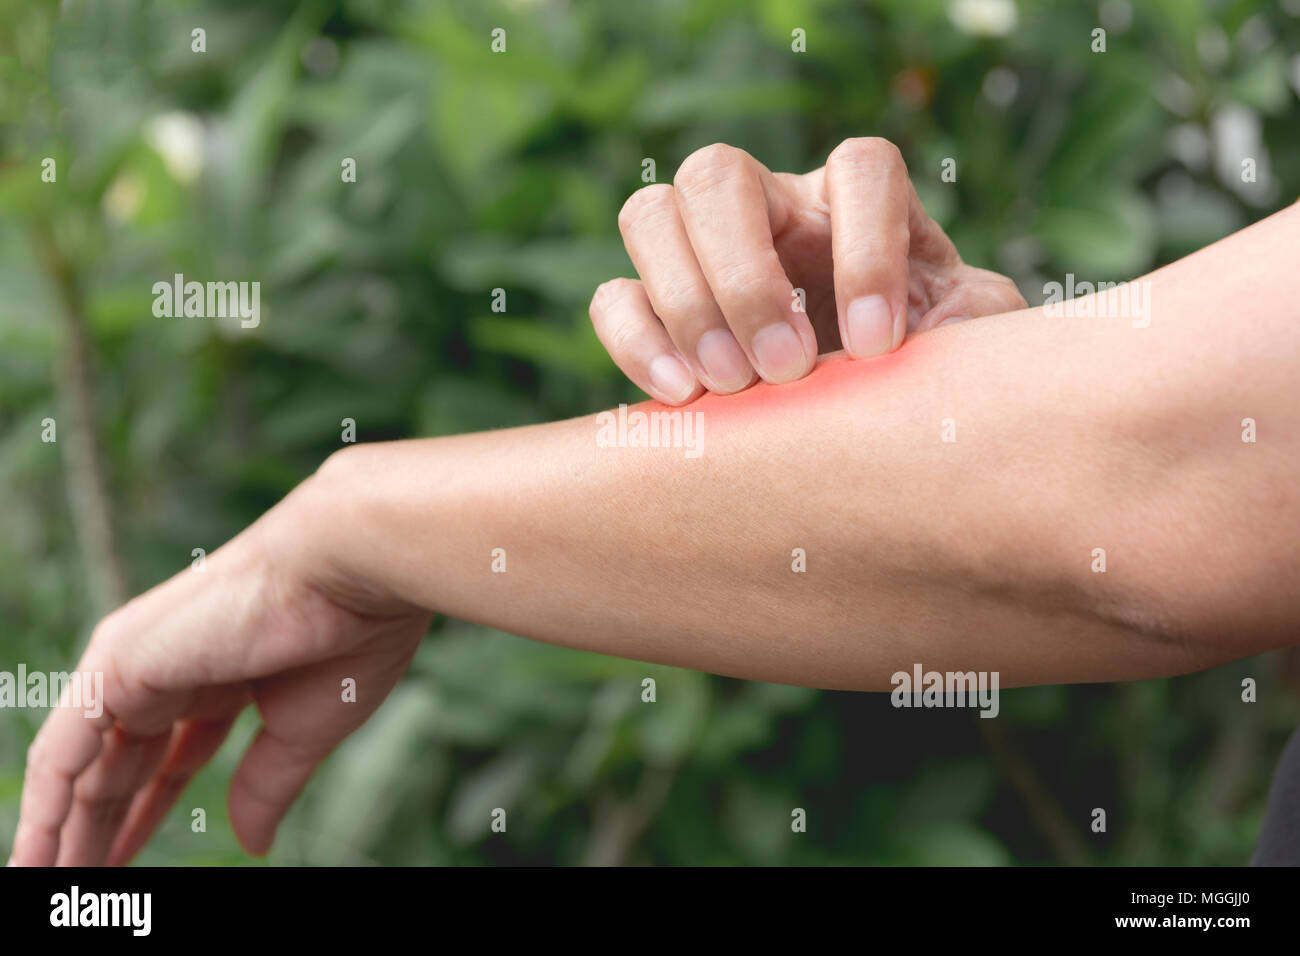 Dry Skin Woman Arm Stock Photos & Dry Skin Woman Arm Stock Images